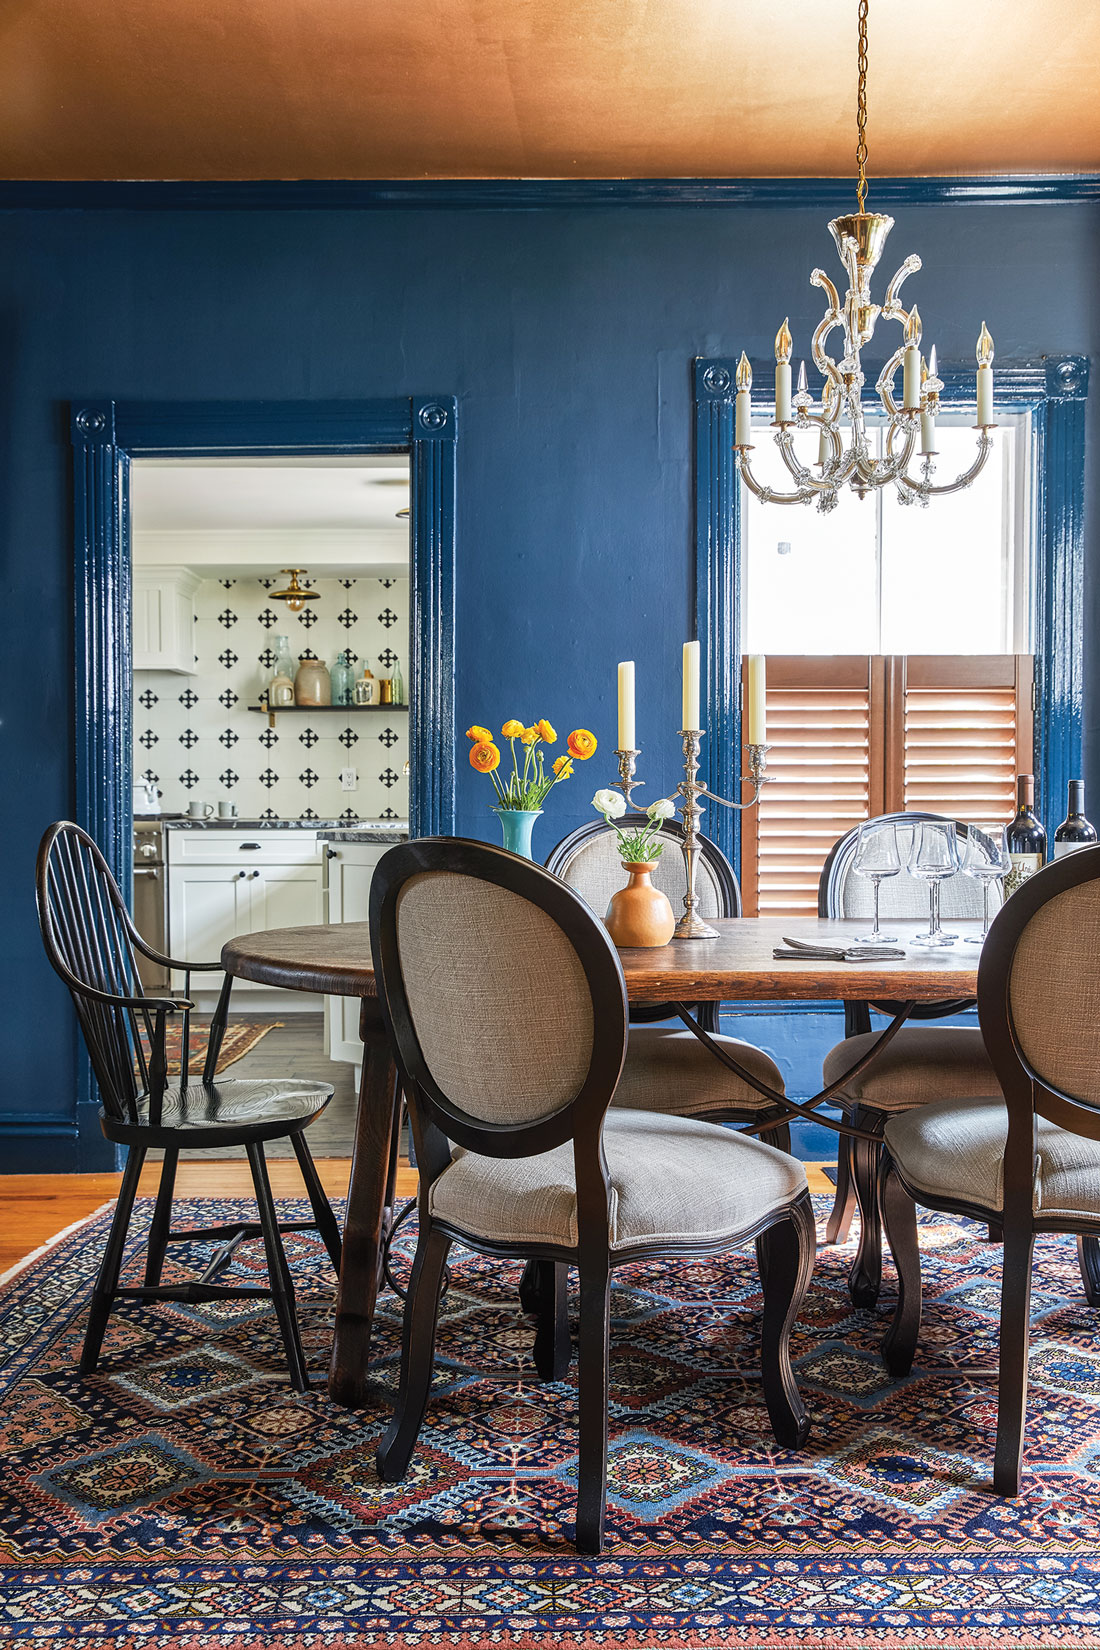 Hague Blue, a classic blue by Farrow & Ball